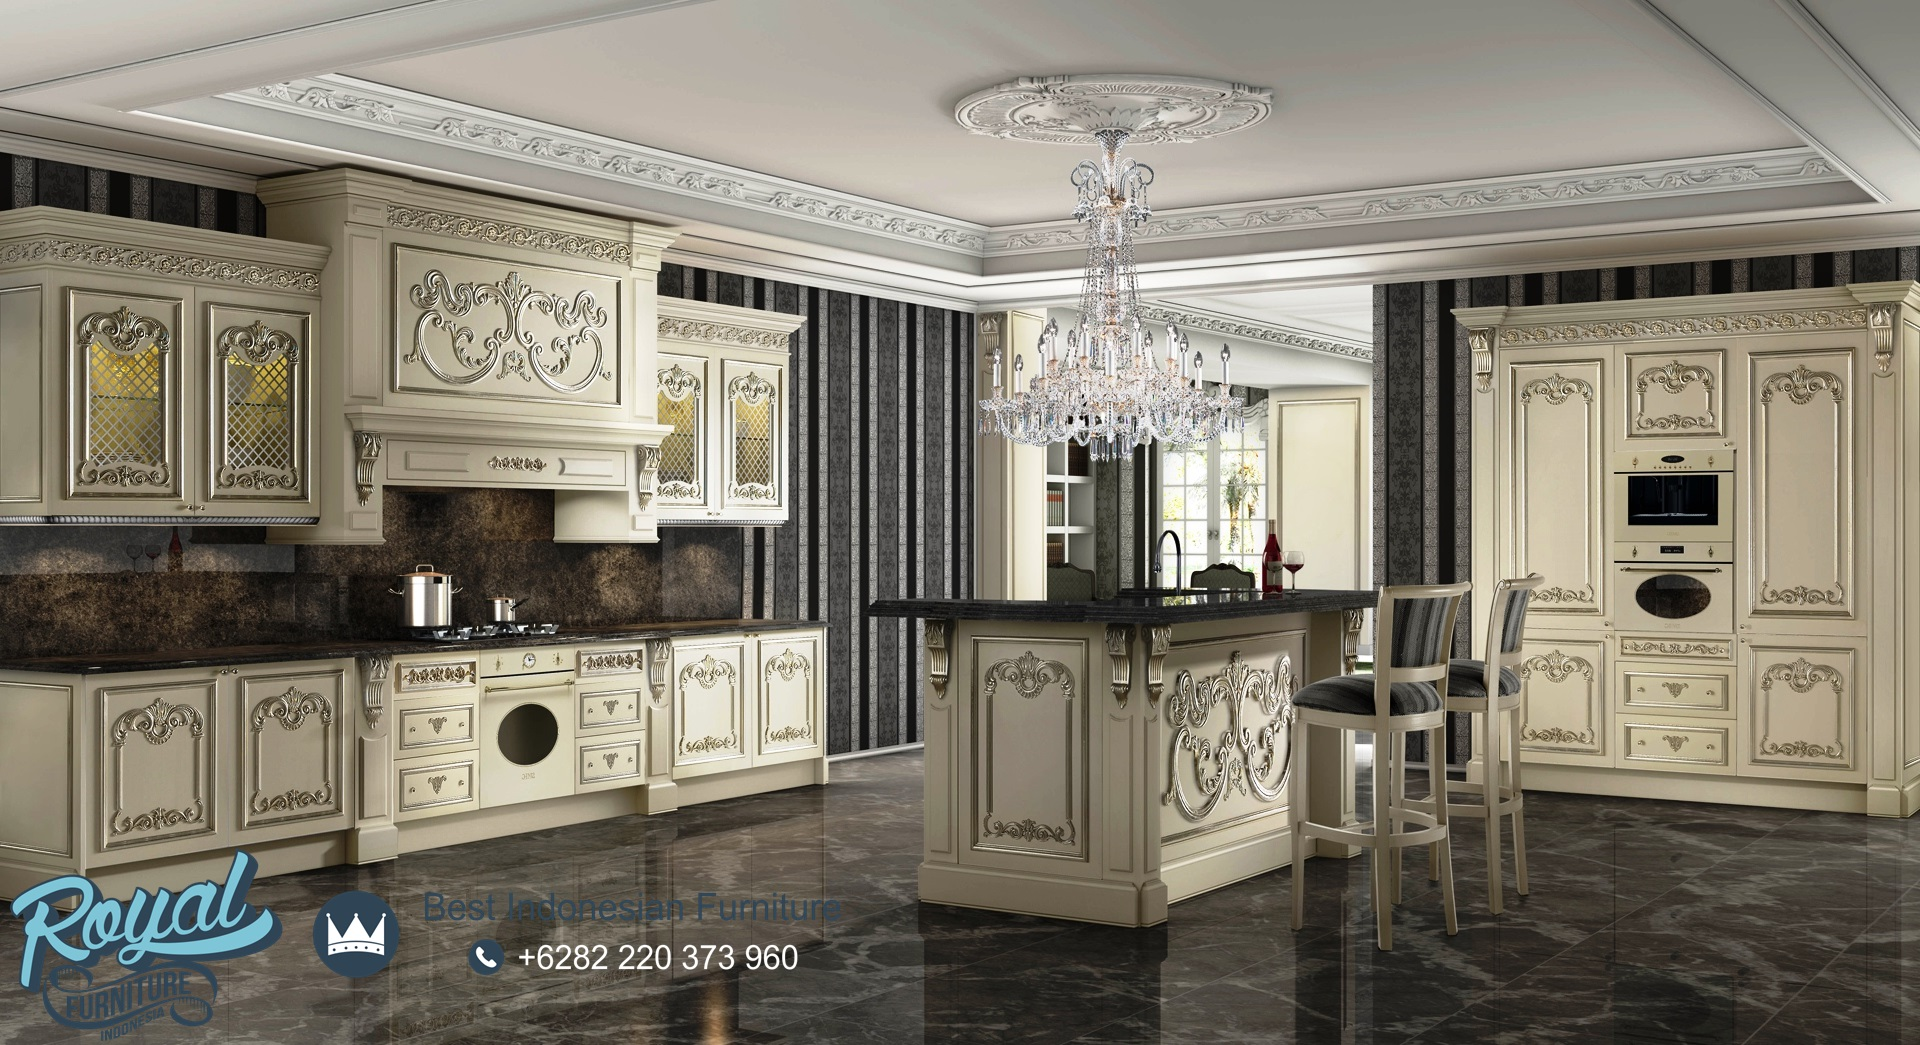 Kitchen Set Model Terbaru Kayu Ukiran Jepara Putih Italian Style, kitchen set jepara, kitchen set jepara jati, kitchen set jepara terbaru, kitchen set jati jepara, kitchen set kayu jati jepara minimalis, kitchen set ukiran jepara, harga kitchen set jepara, kitchen set ukir jepara, model kitchen set jepara, kitchen set kayu jepara, jual furniture kitchen set kayu jati, kitchen set jati dapur mewah, desain kitchen set klasik, kitchen set kayu ukiran mewah modern terbaru, kitchen set putih duco, mebel jepara, furniture jepara, royal furniture